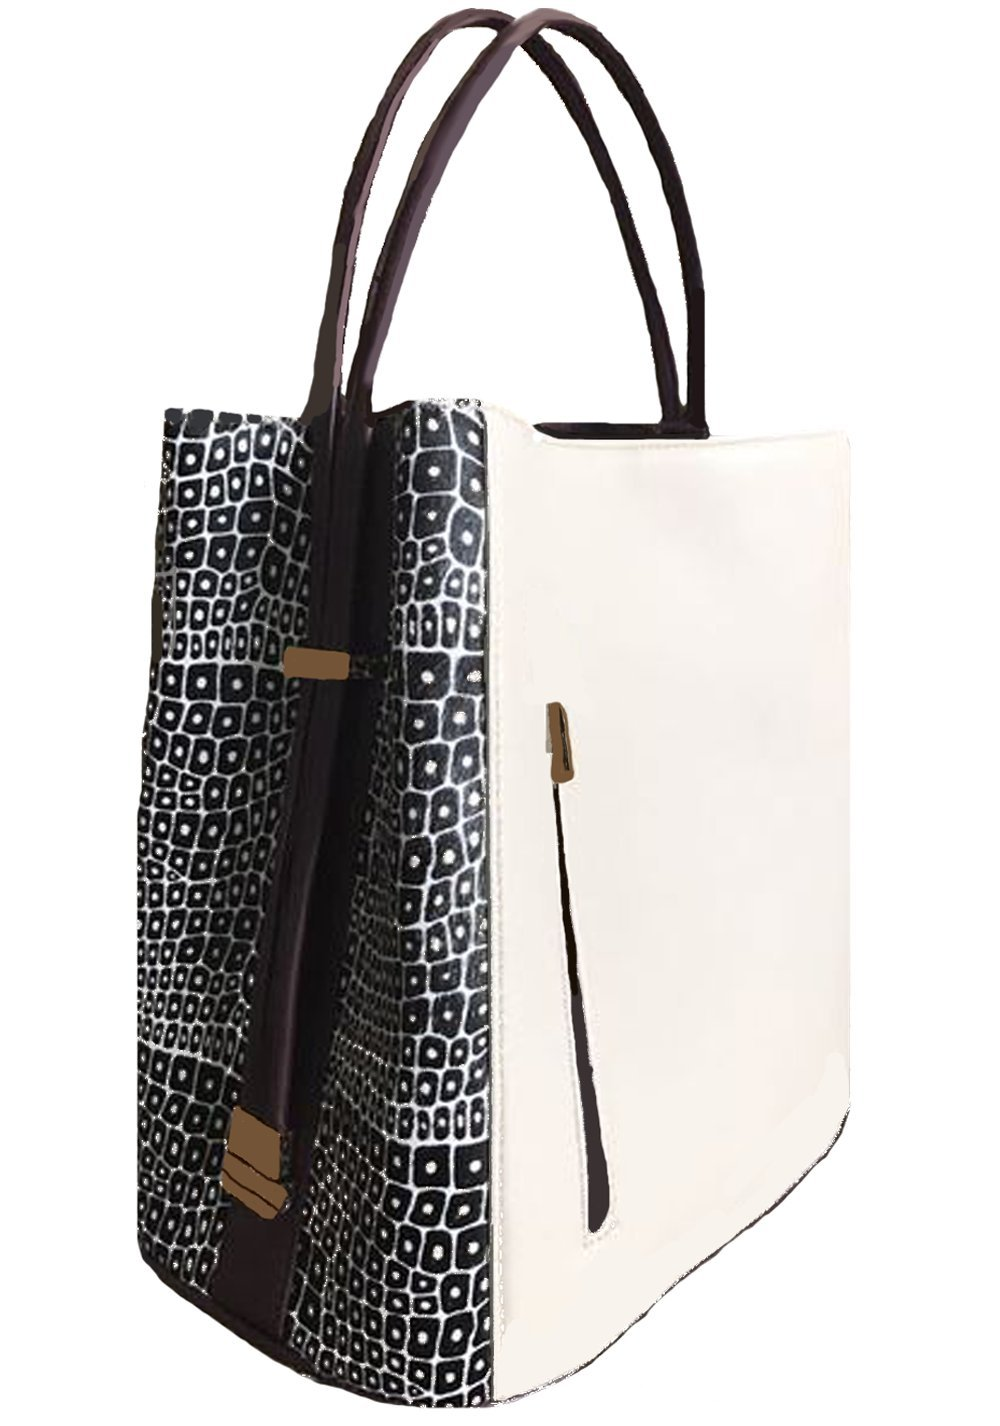 'Keva' Creme Leather with Black and Creme Haircalf Panels Handbag by Samoe Style by Samoe Style